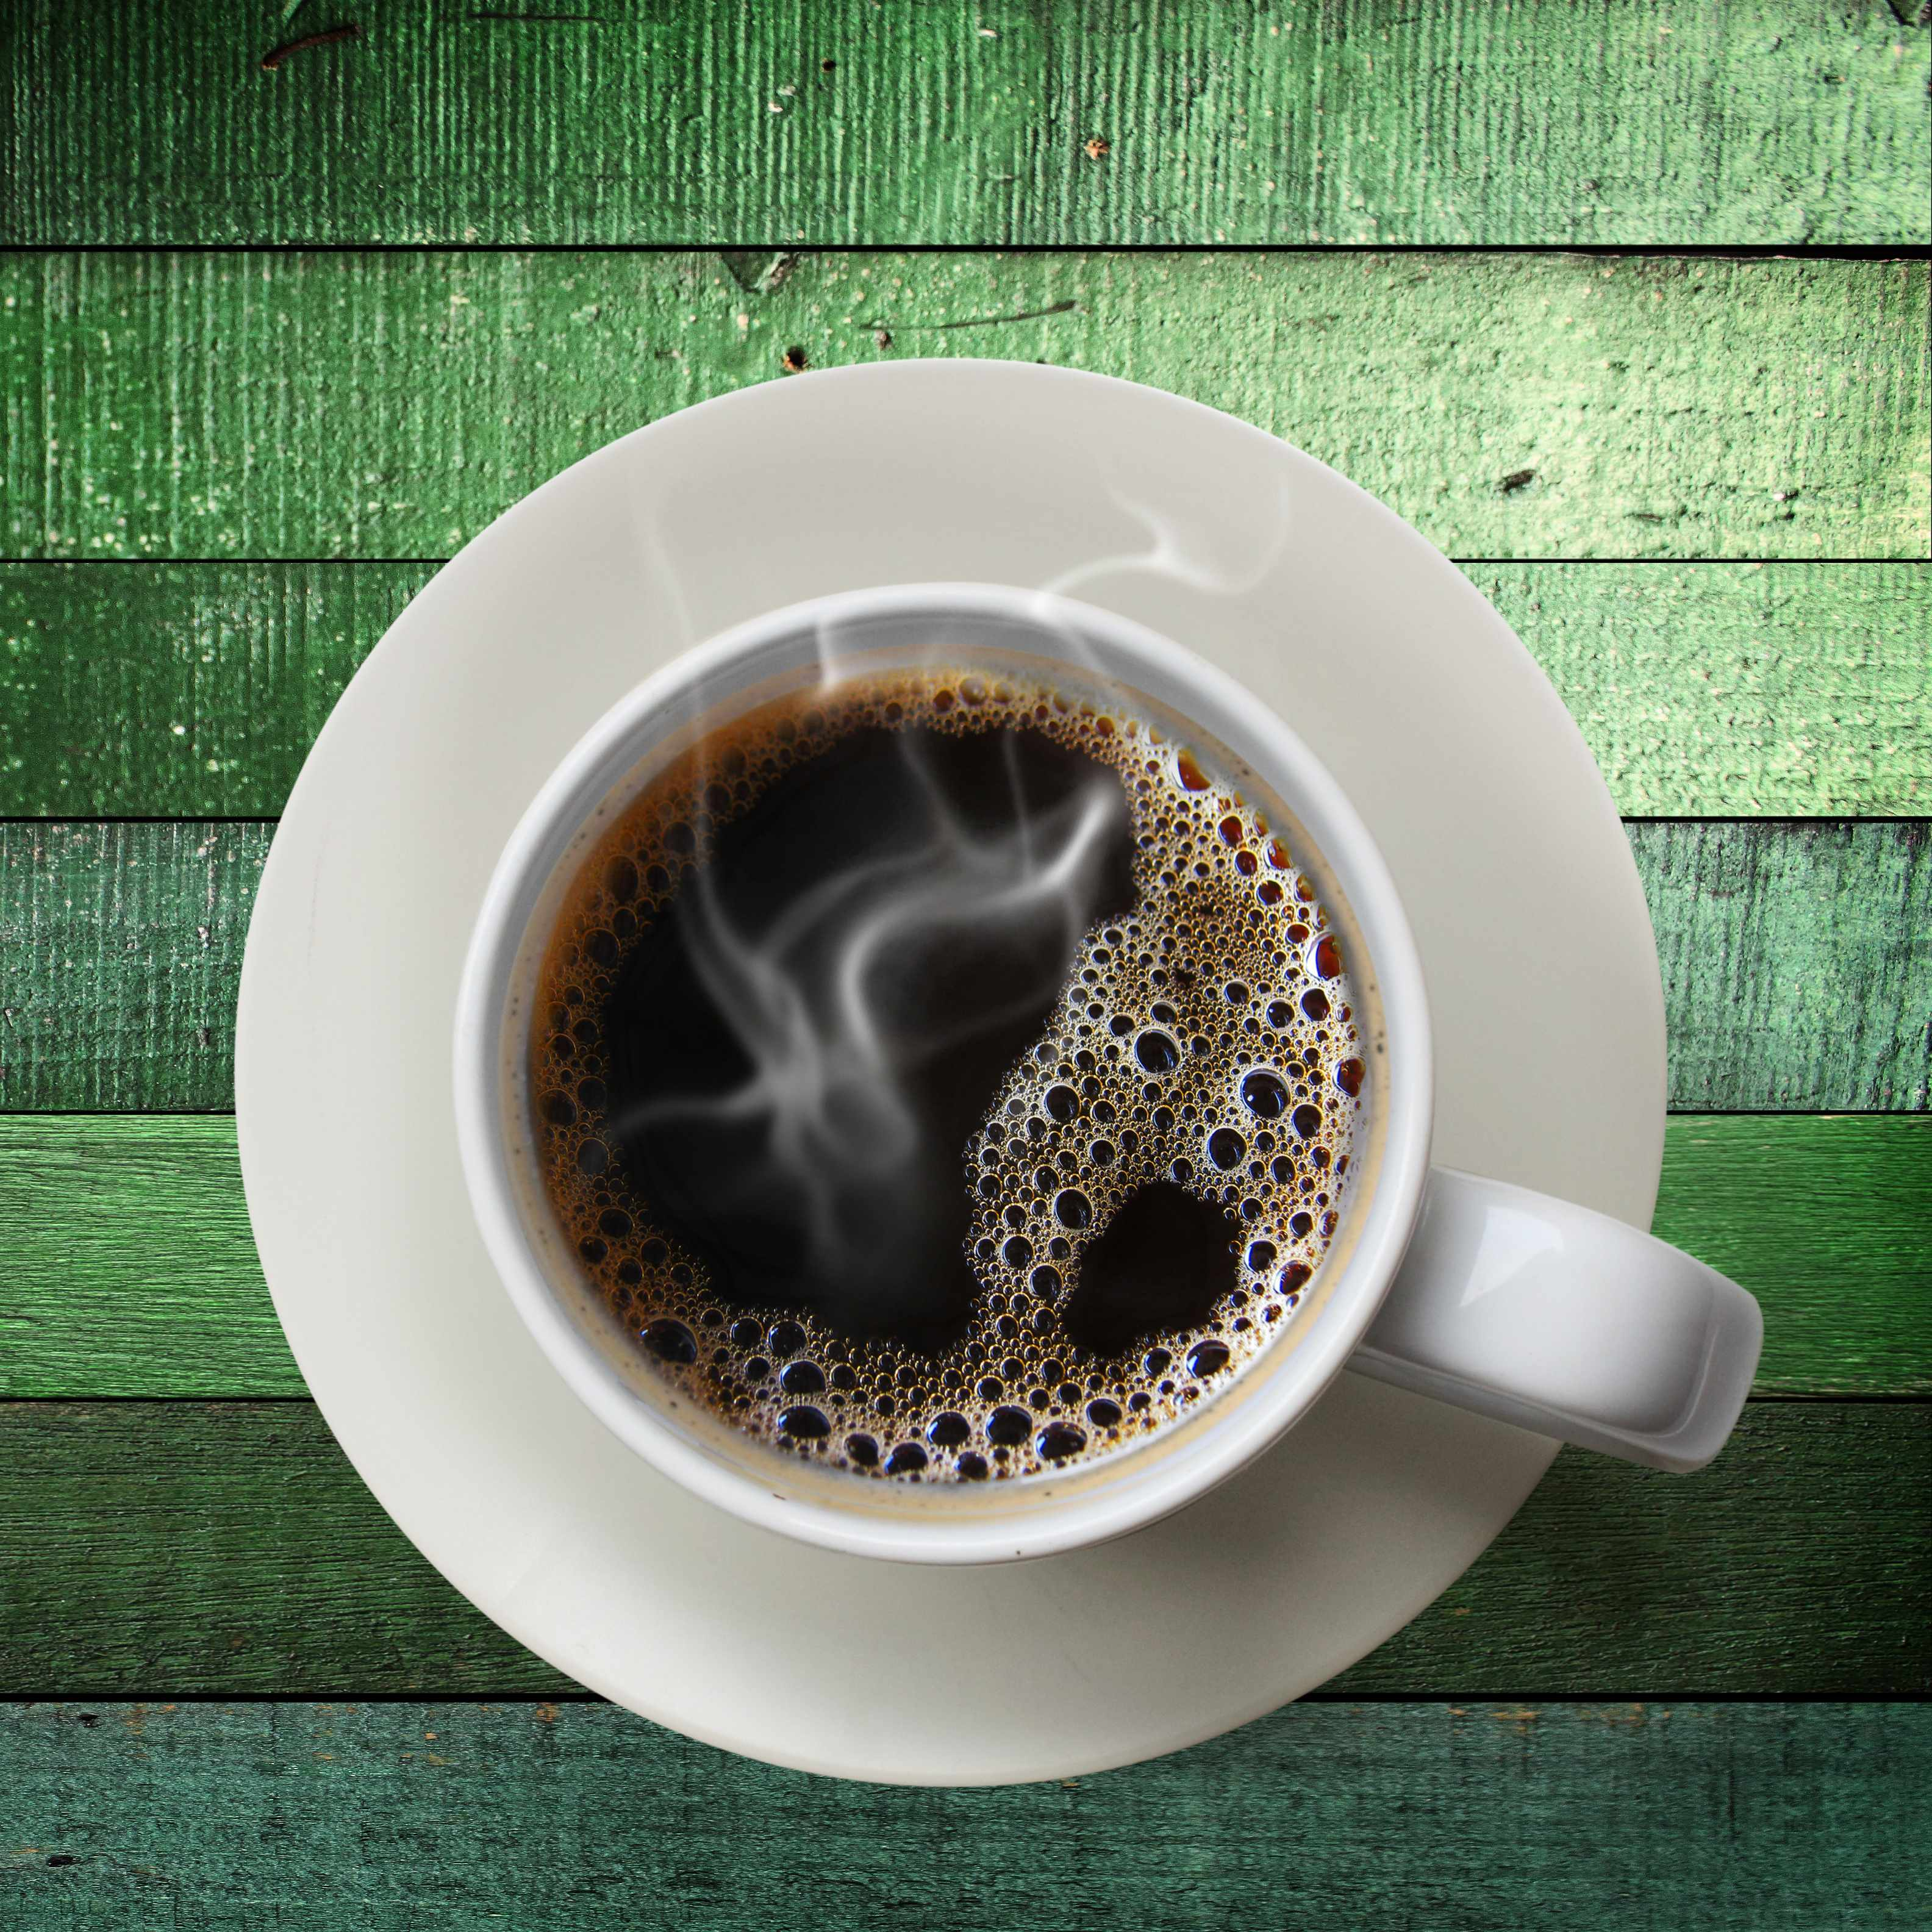 an overhead view of a single cup of steaming coffee on a green wooden surface